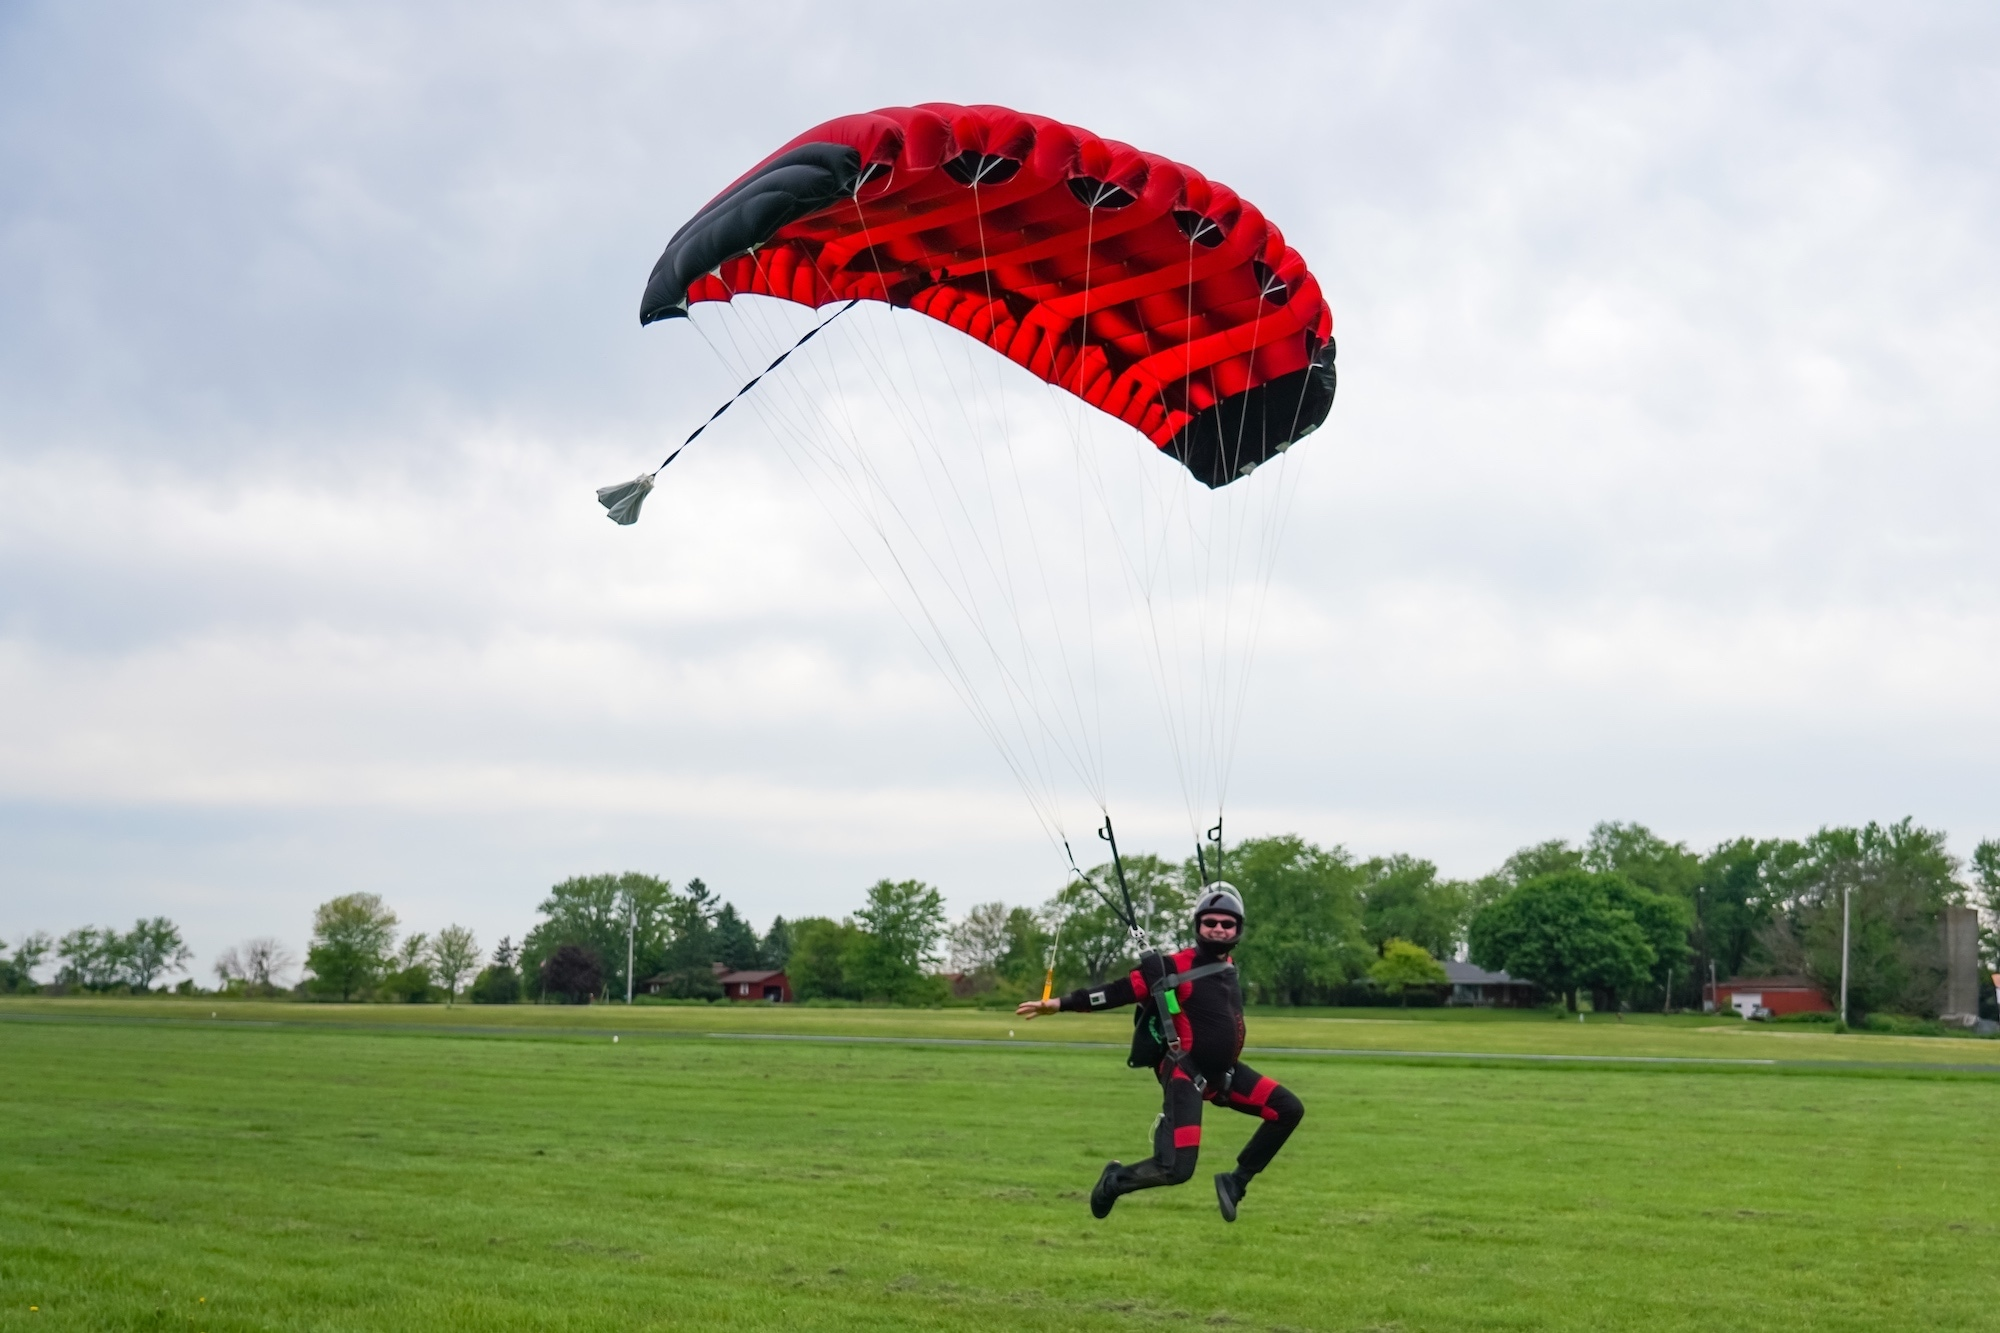 ATP Learn to Skydive. Landing a Parachute